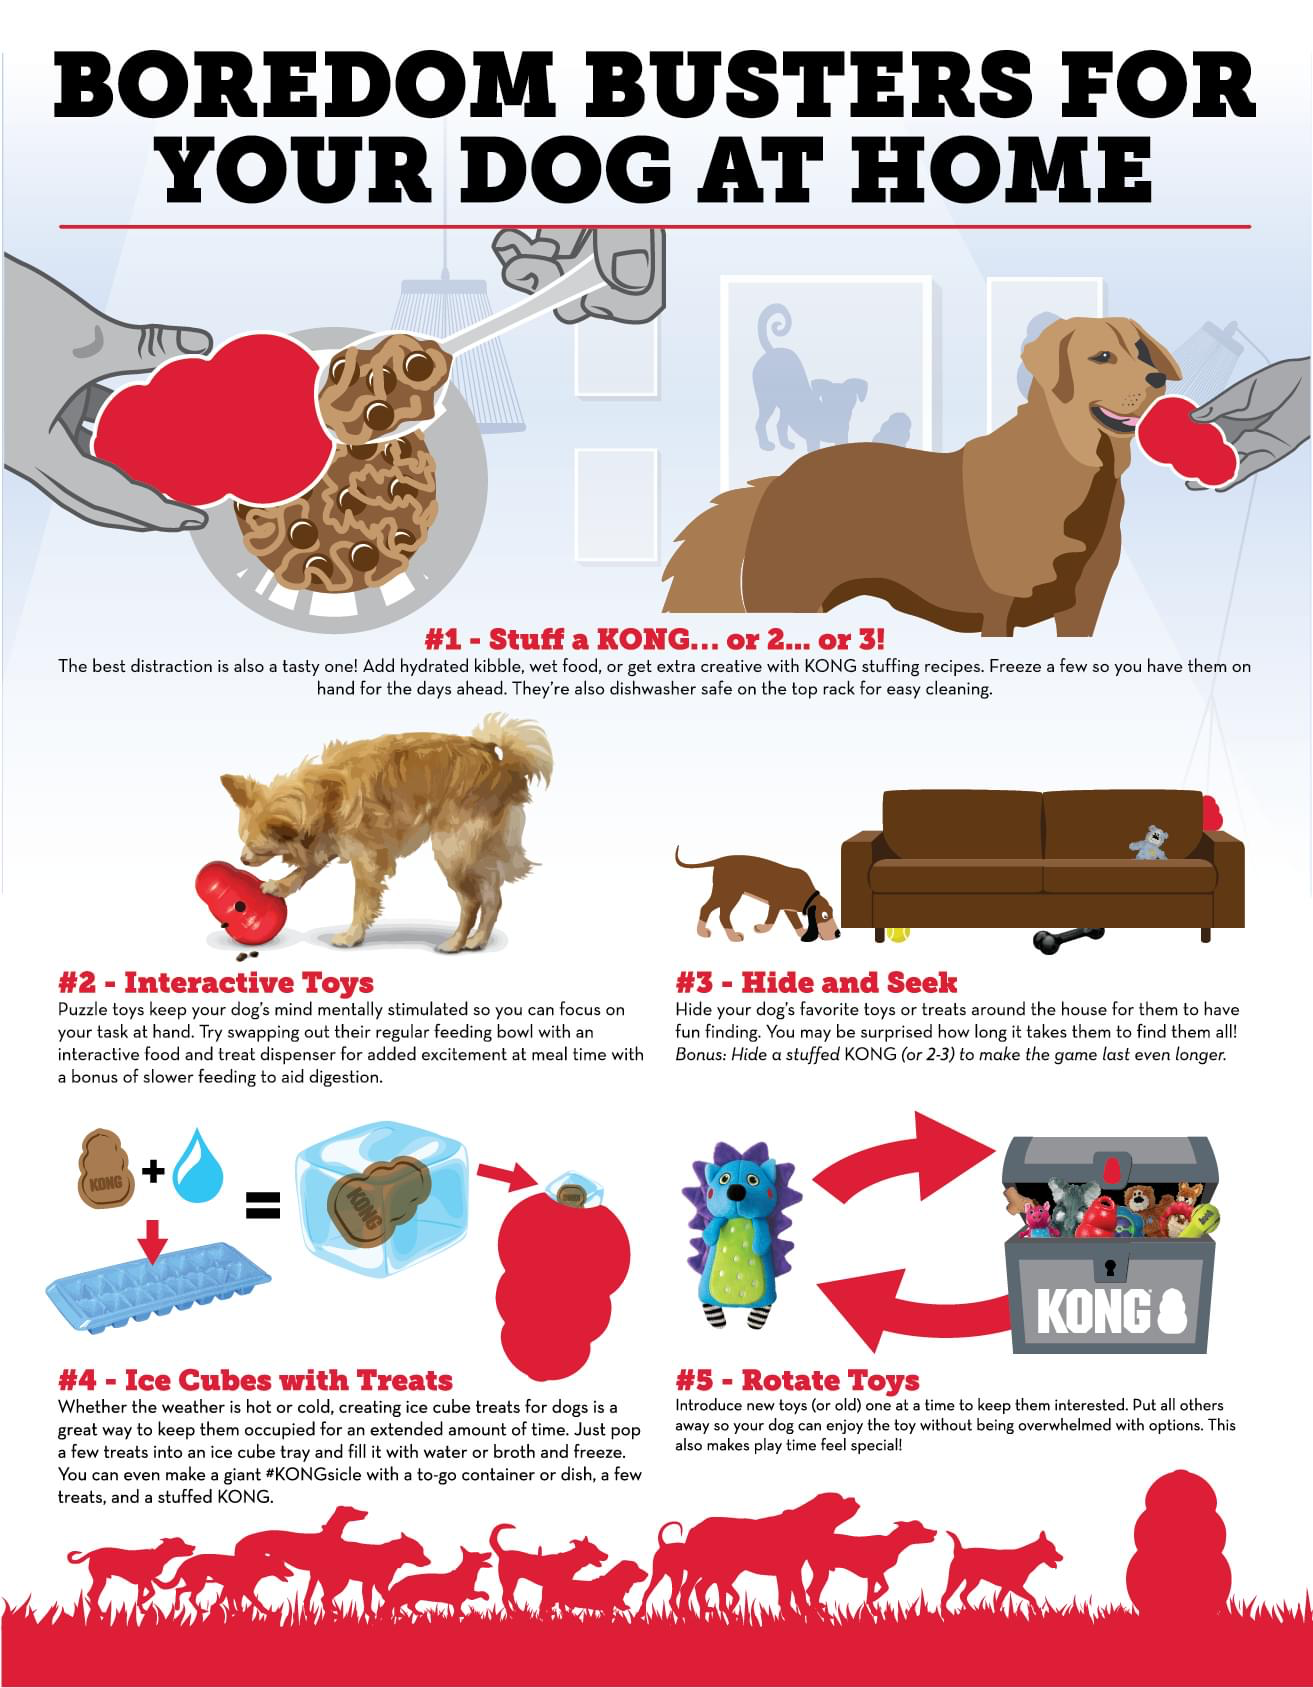 Boredom Busters For Your Dog at Home